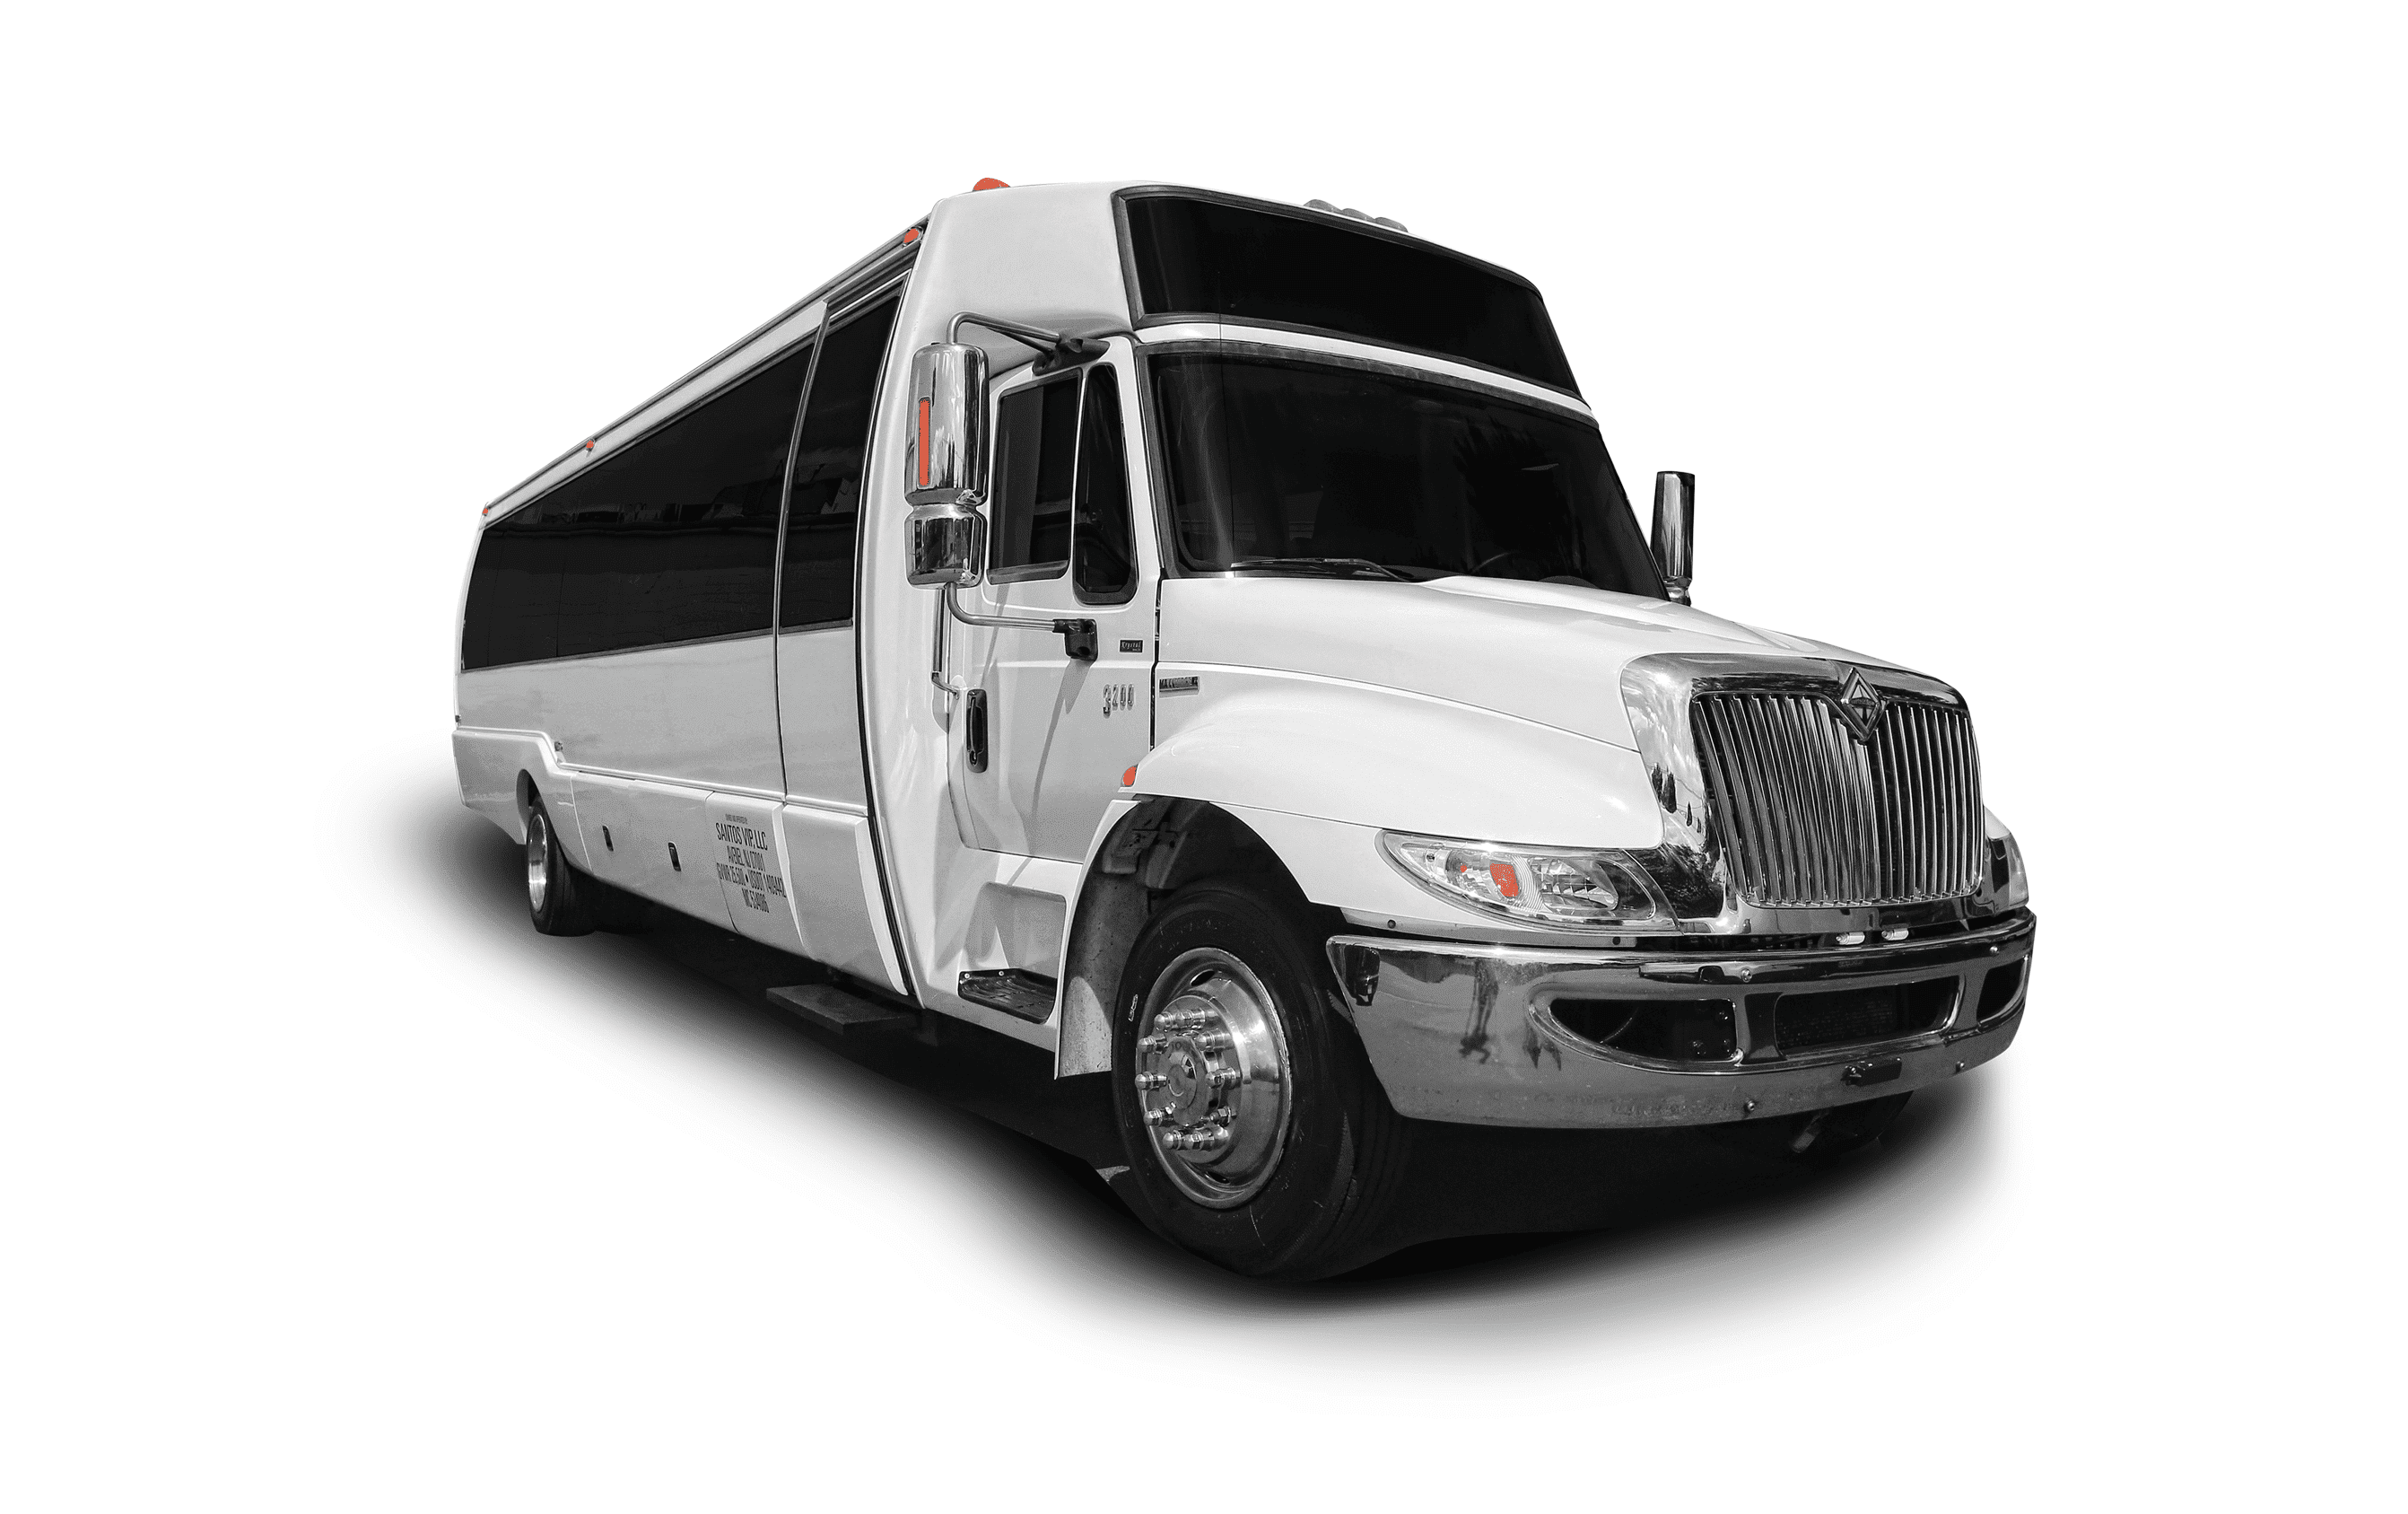 28 passenger VIP Limo Coach Party Bus rental for tours to Halloween / haunted house attractions in NJ, NY & PA.